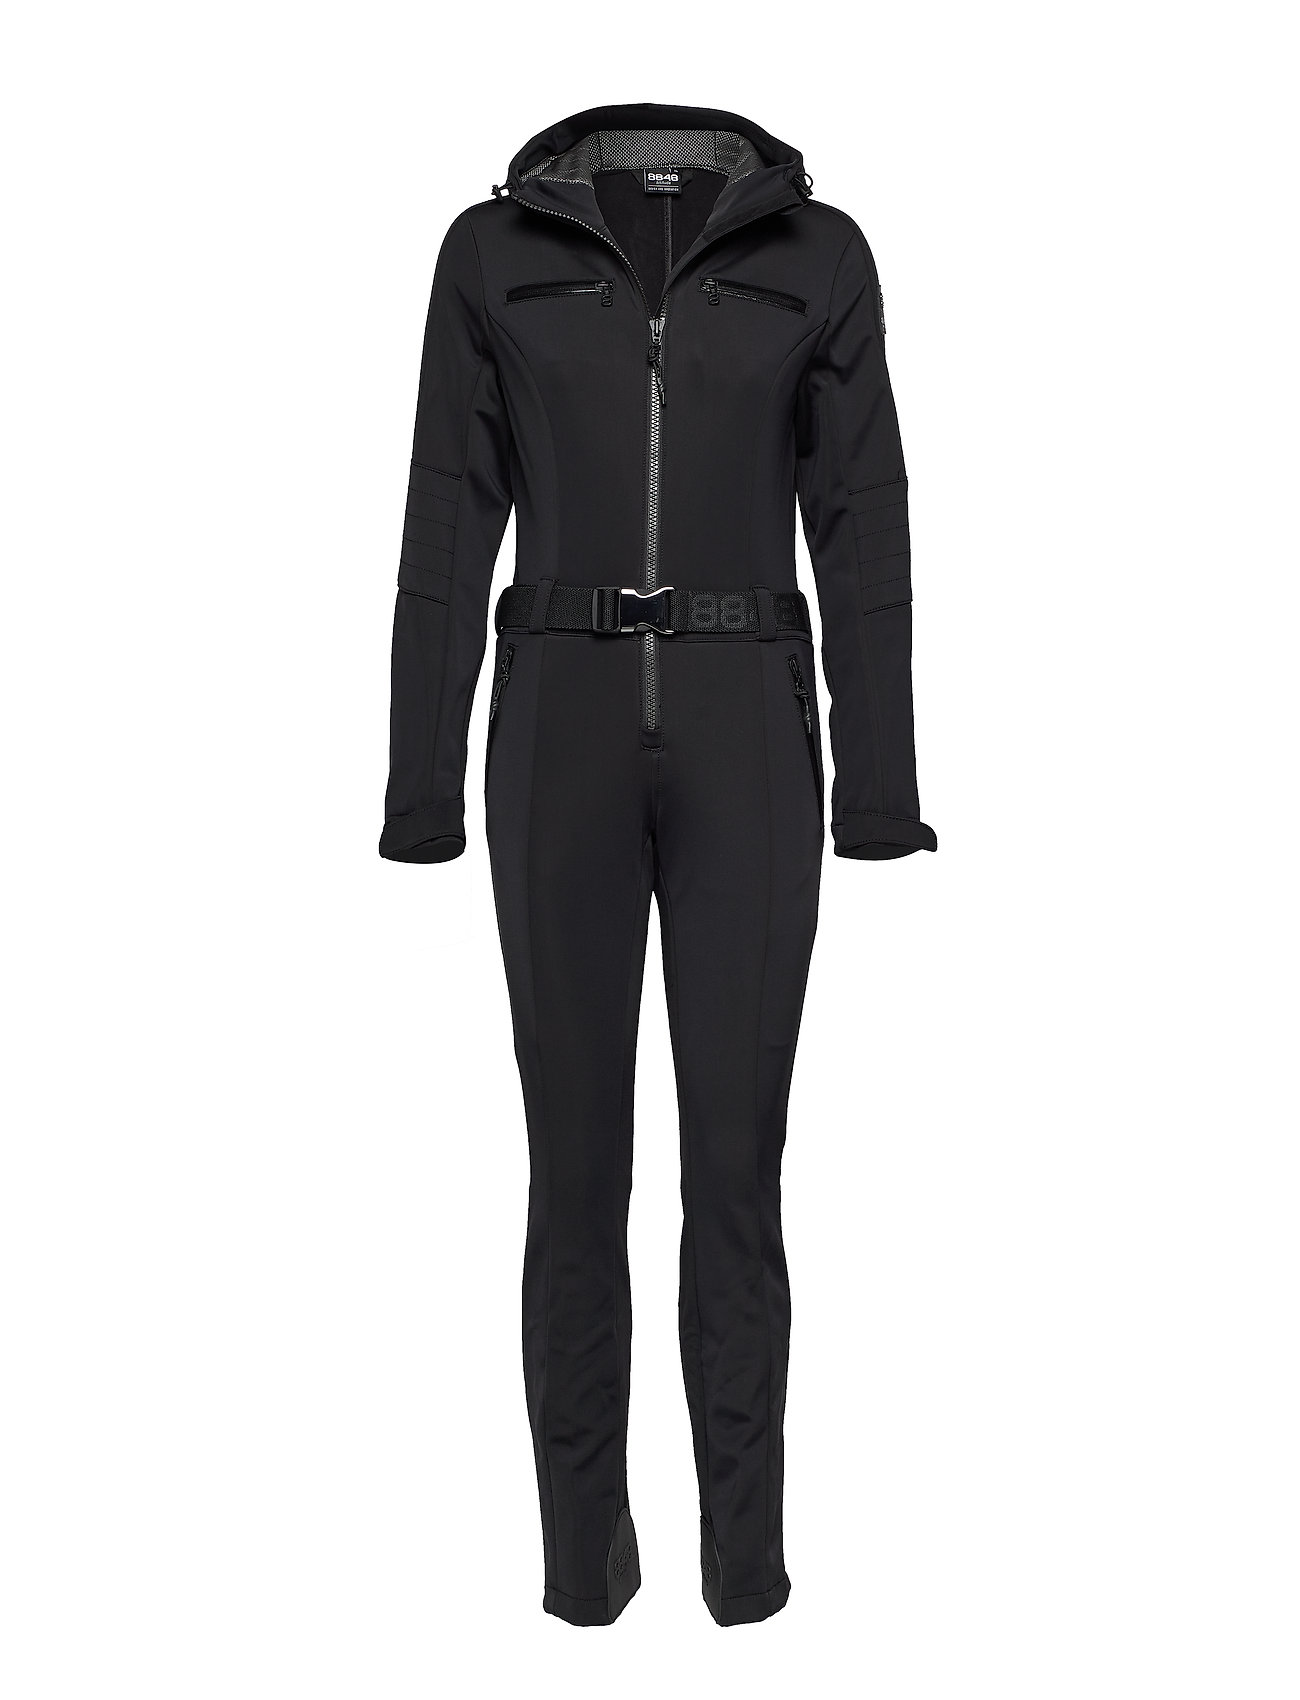 8848 Altitude Cat W Ski Suit - BLACK